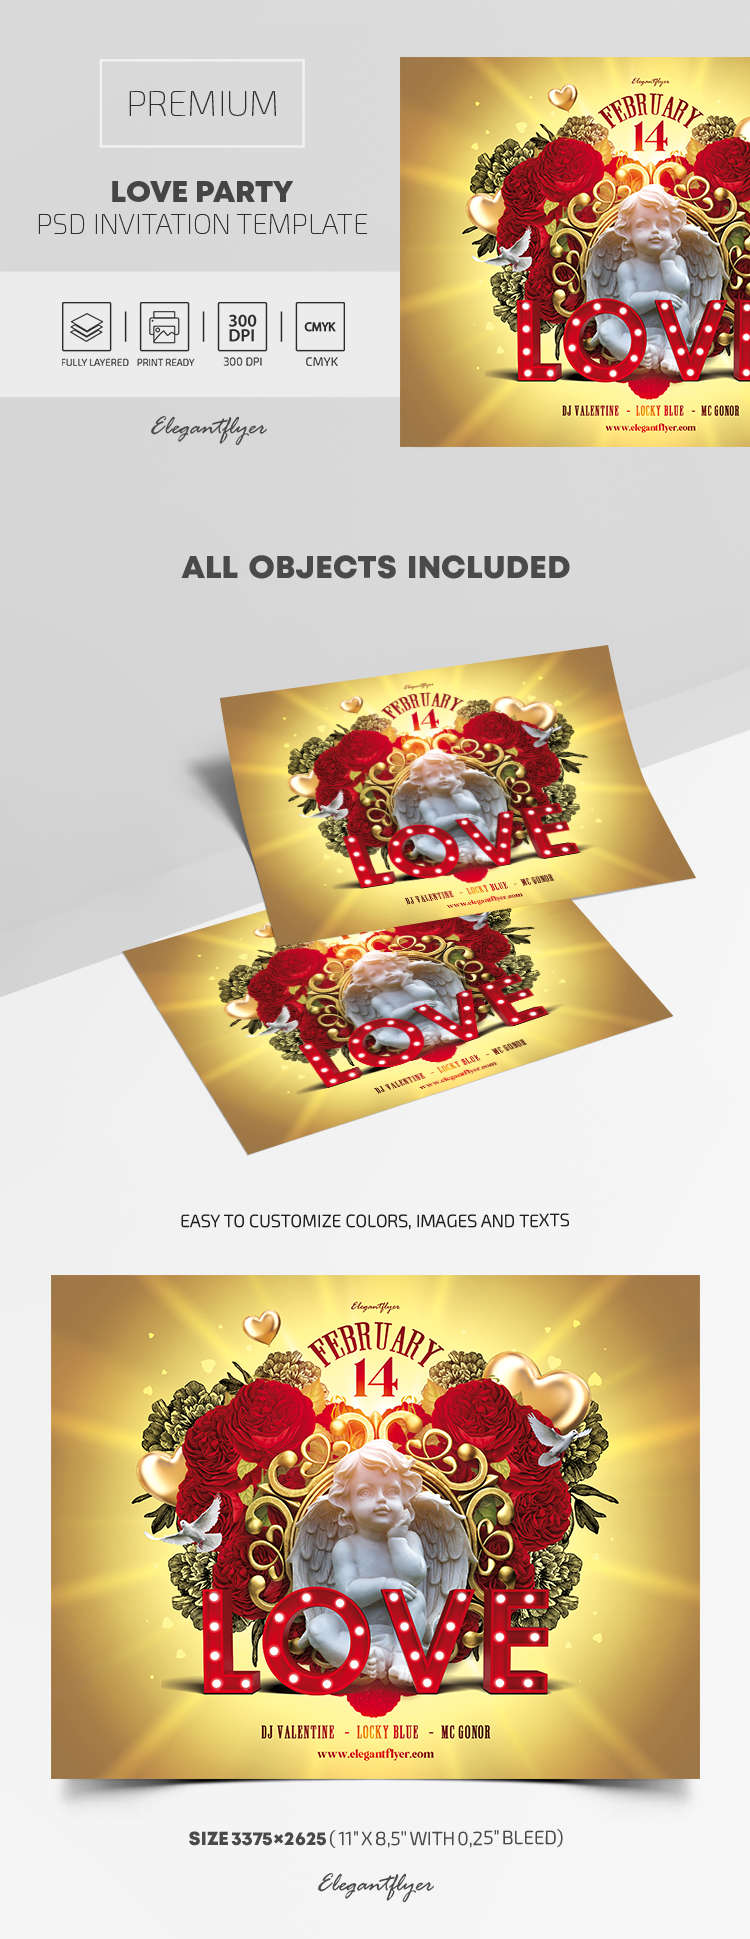 Premium Love Party Invitation PSD Template